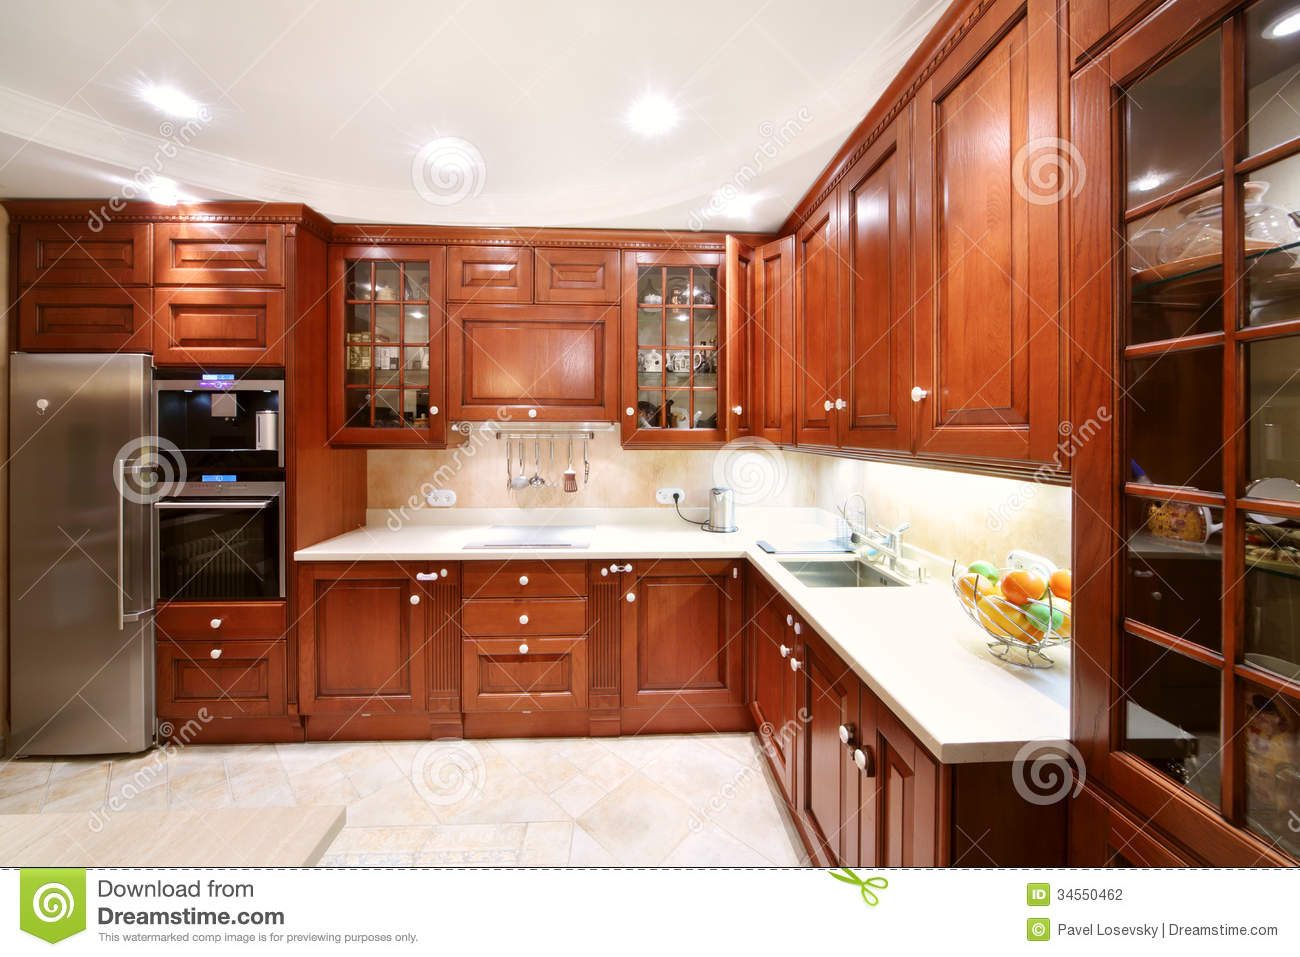 Simple Wooden Kitchen Cupboards Countertops Refrigerator